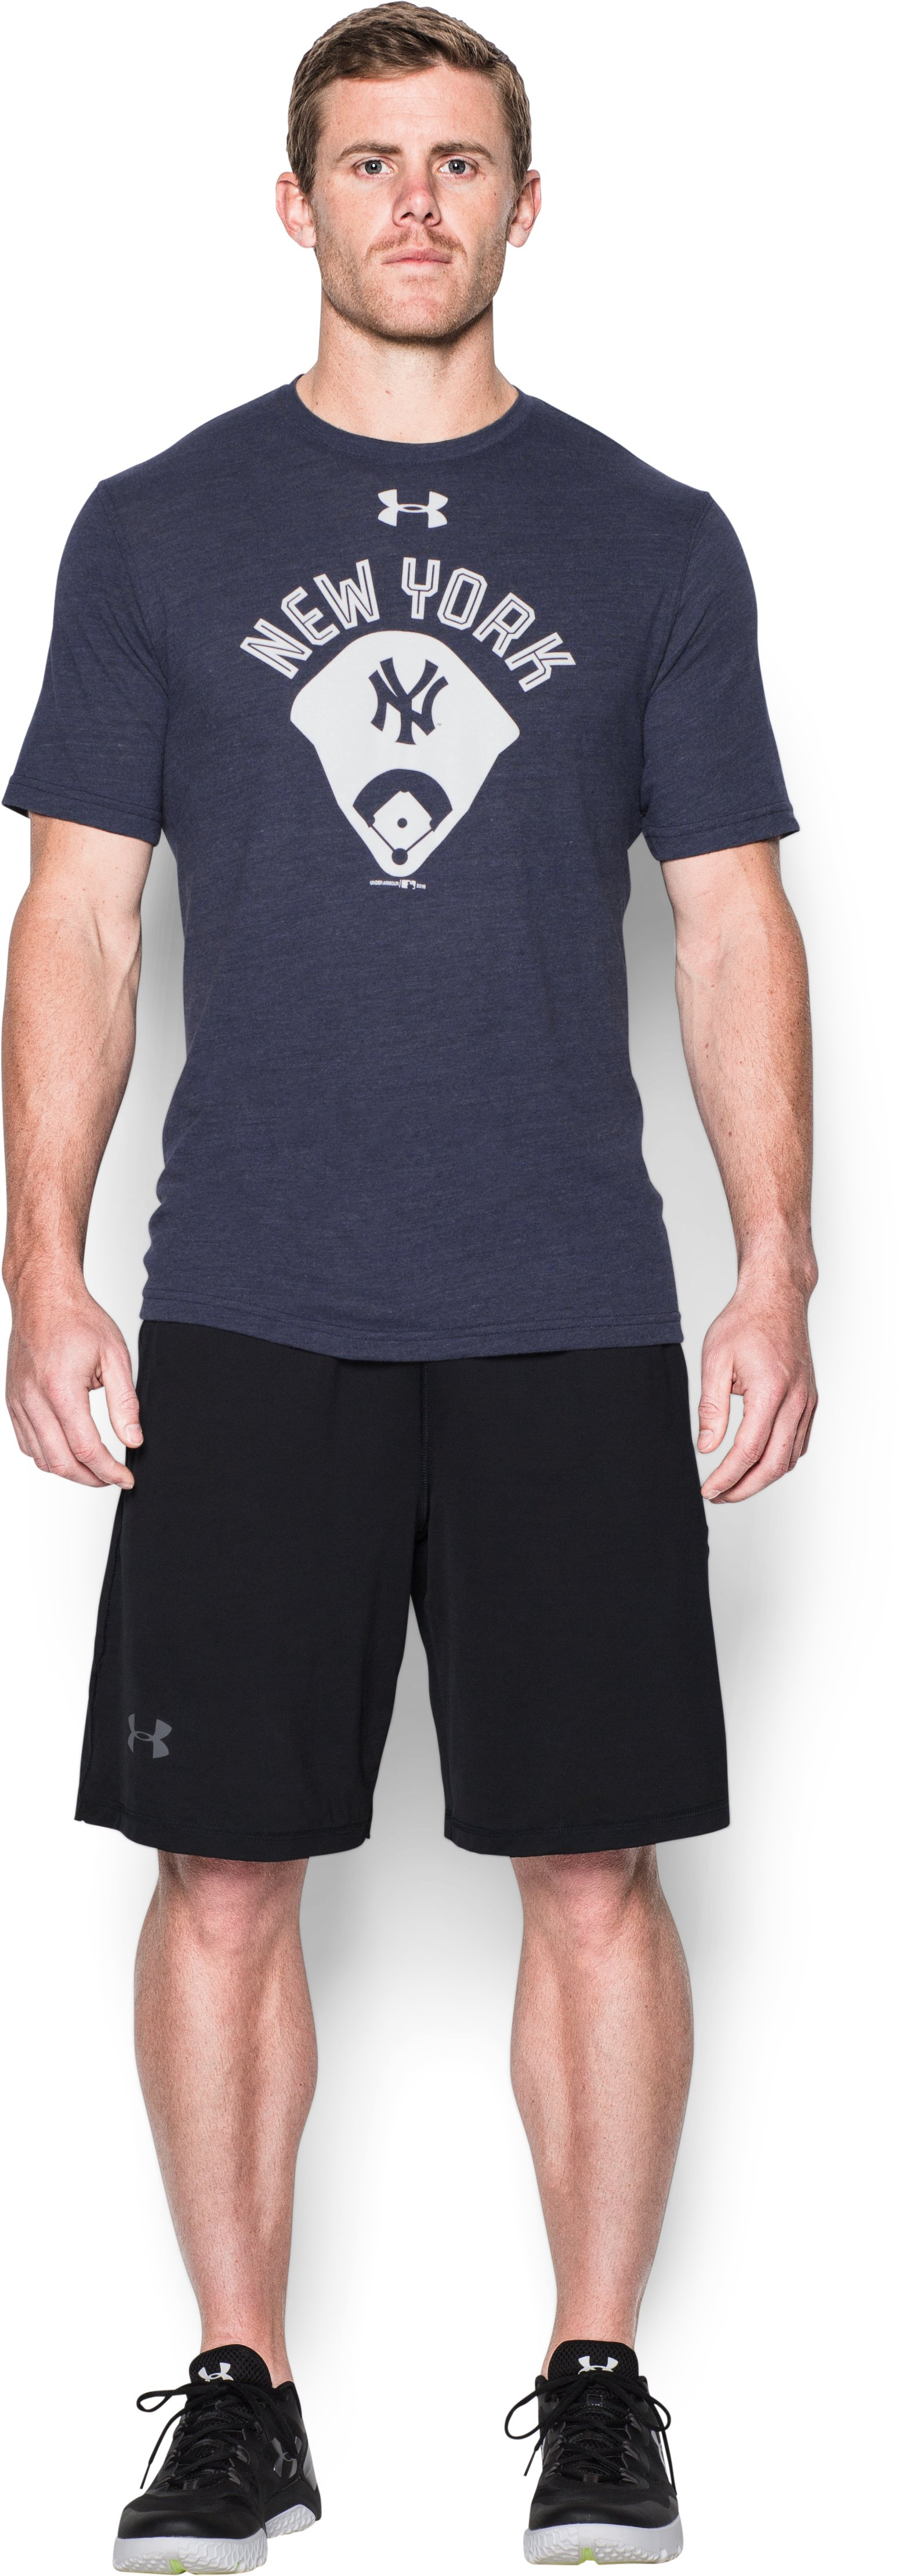 Men's New York Yankees Vintage Tri-blend, Midnight Navy